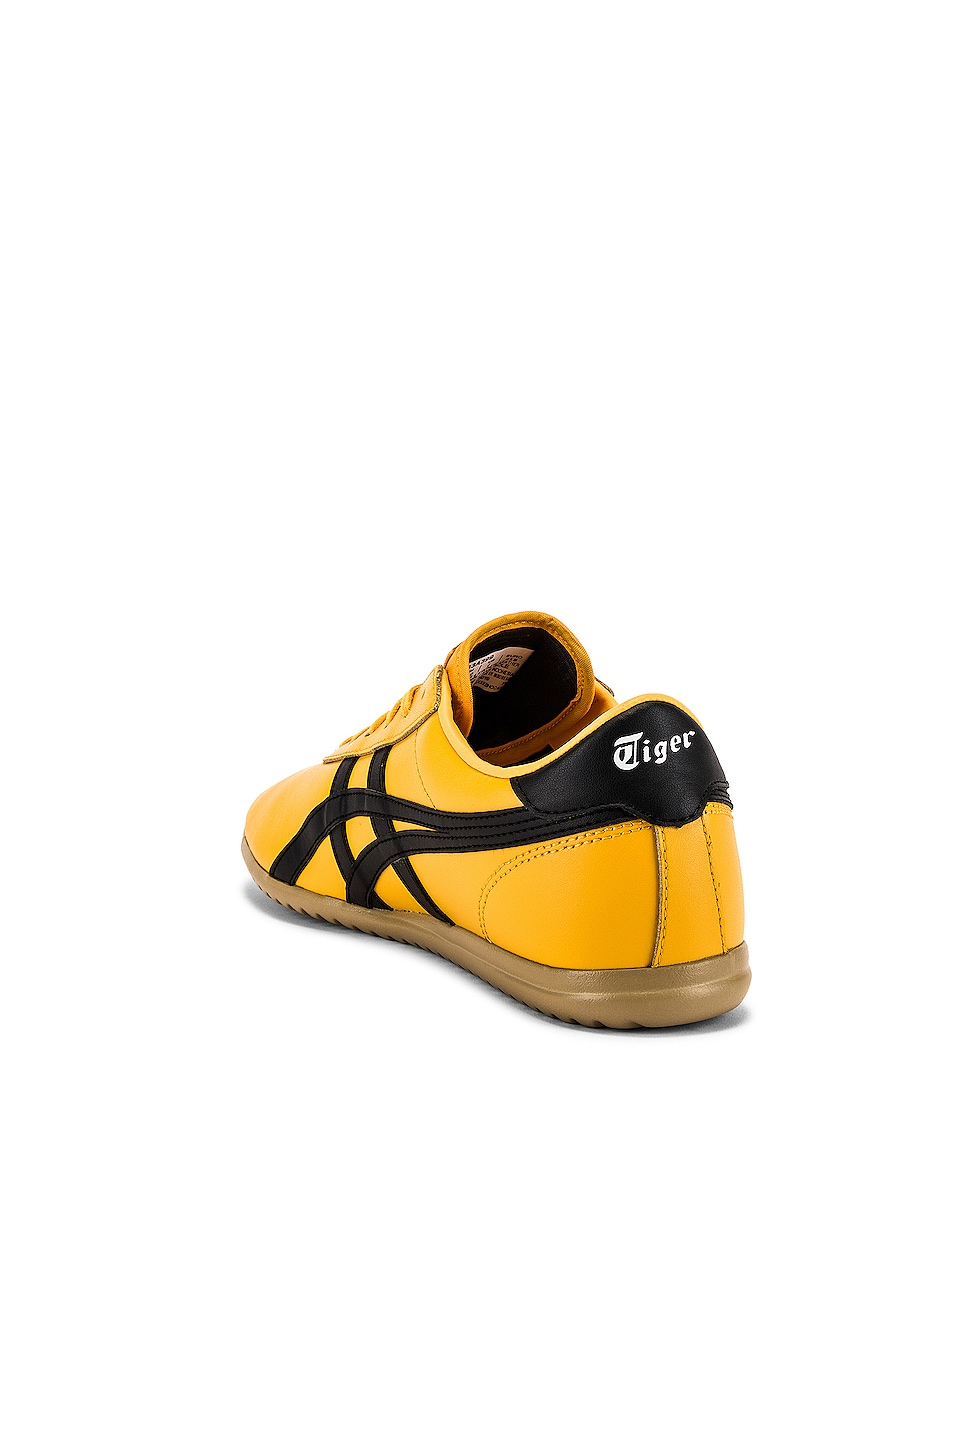 Image 3 of Onitsuka Tiger Tai-Chi-Reb in Tiger Yellow & Black